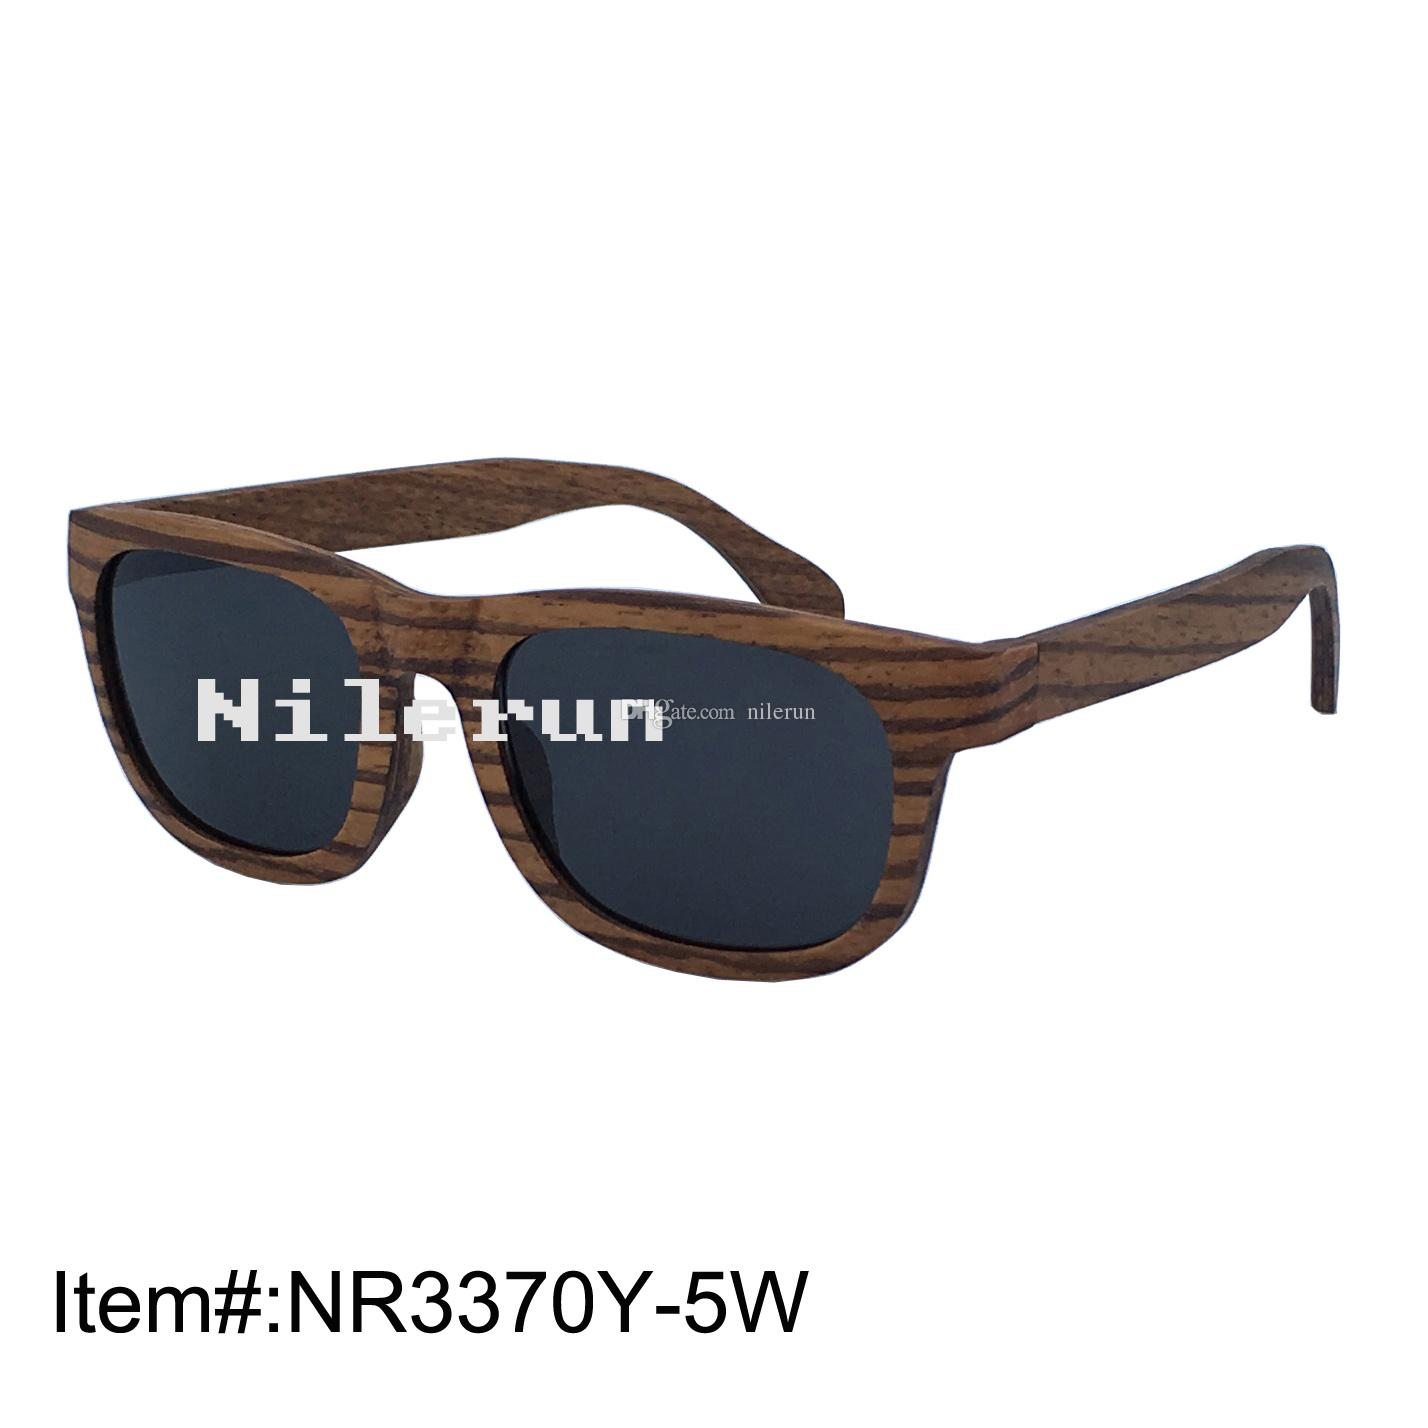 2f7f71e78de Strong Grey Polarized Lenses Zebra Layered Wood Sunglasses Glasses For Men  Mens Eyeglasses From Nilerun